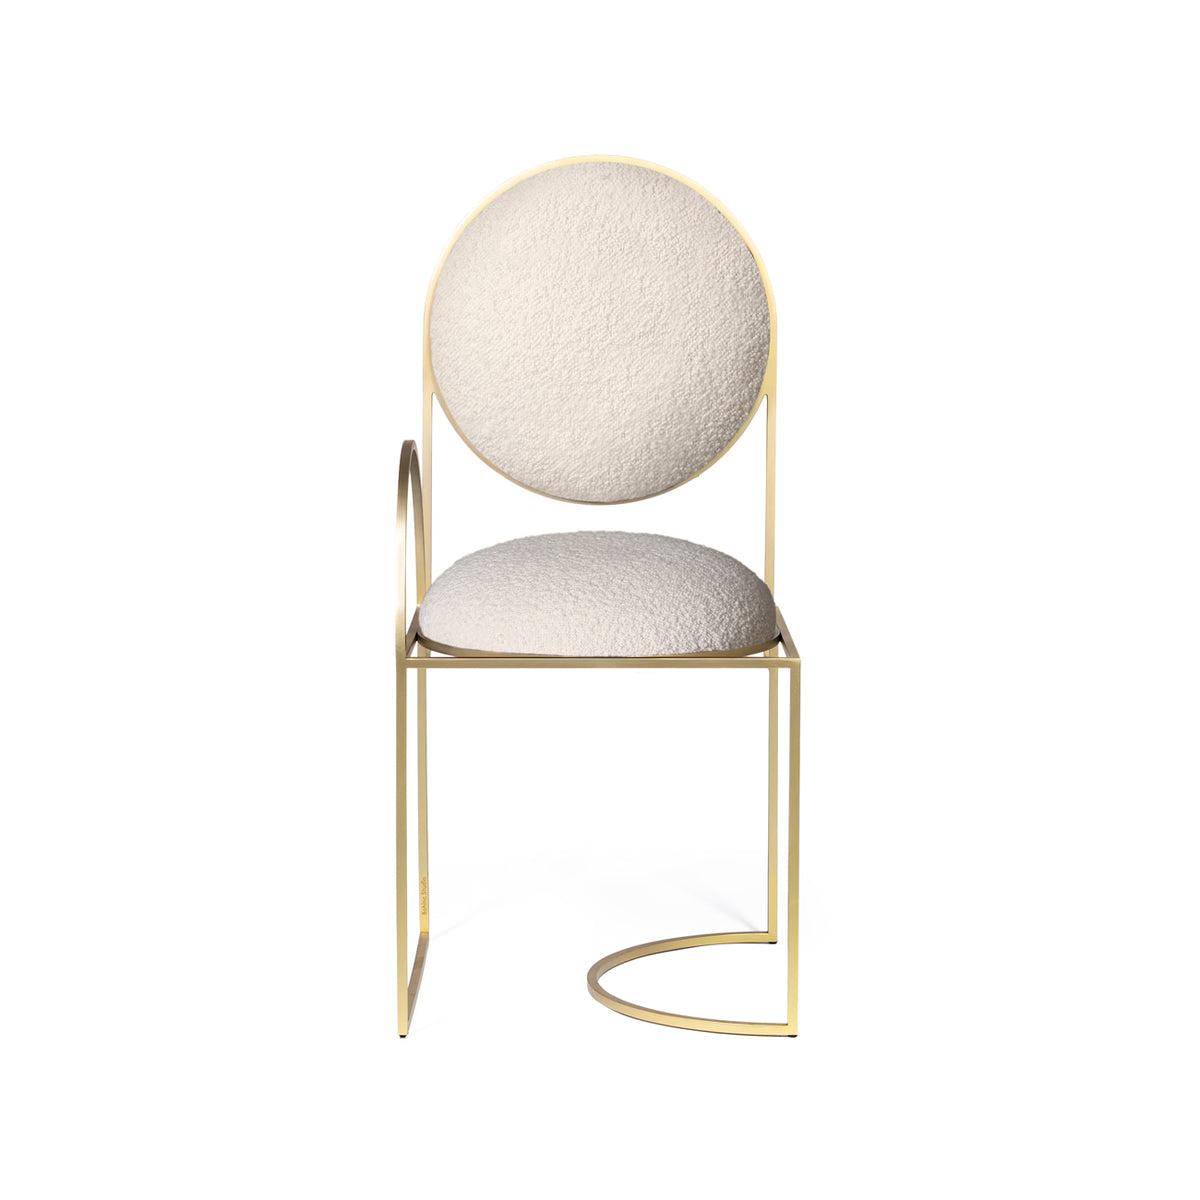 SOLAR CHAIR - IVORY BOUCLE